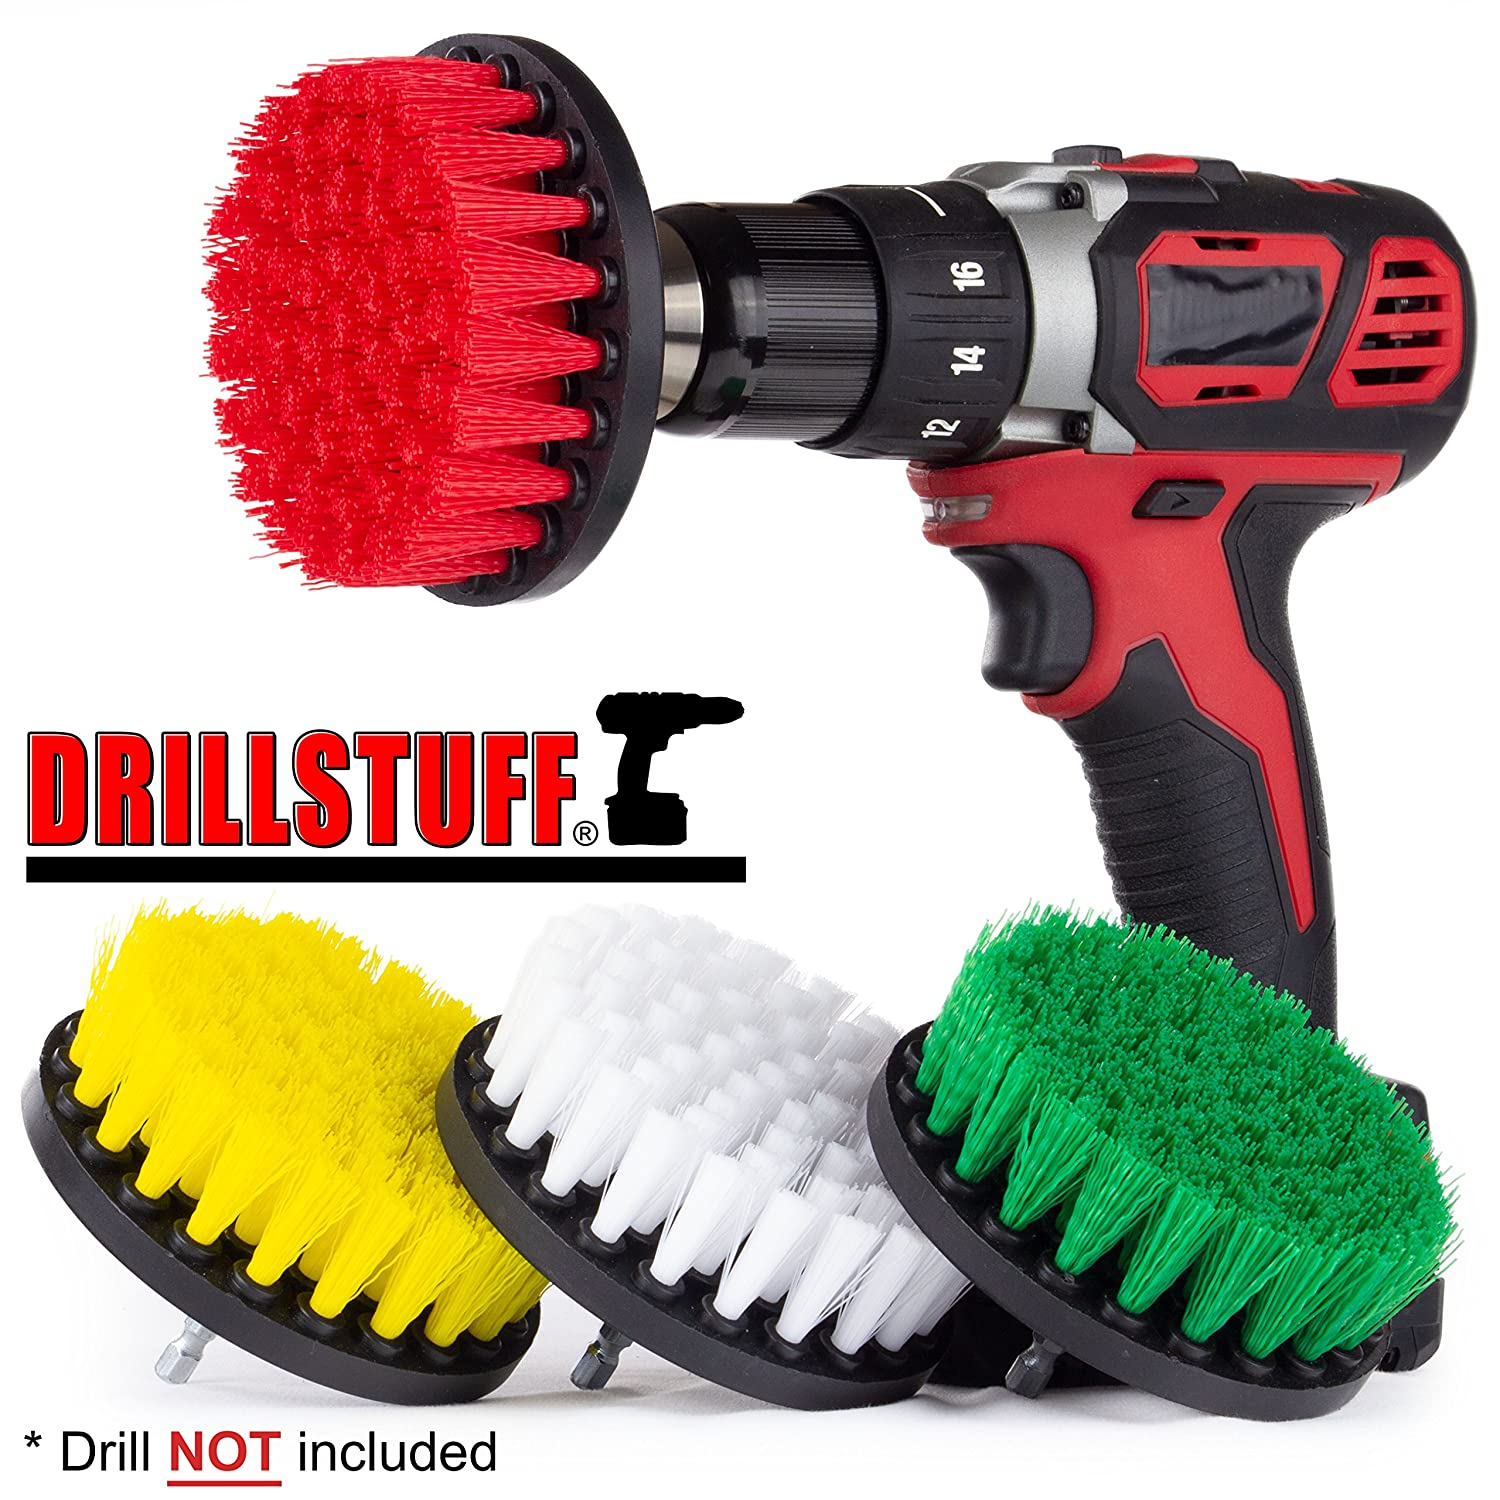 4in 4 Piece Soft, Medium and Stiff Power Scrubbing Brush Drill Attachment for Cleaning Showers, Tubs, Bathrooms, Tile, Grout, Carpet, Tires, Boats by DrillStuff 4in-S-GRWY-QC-DS